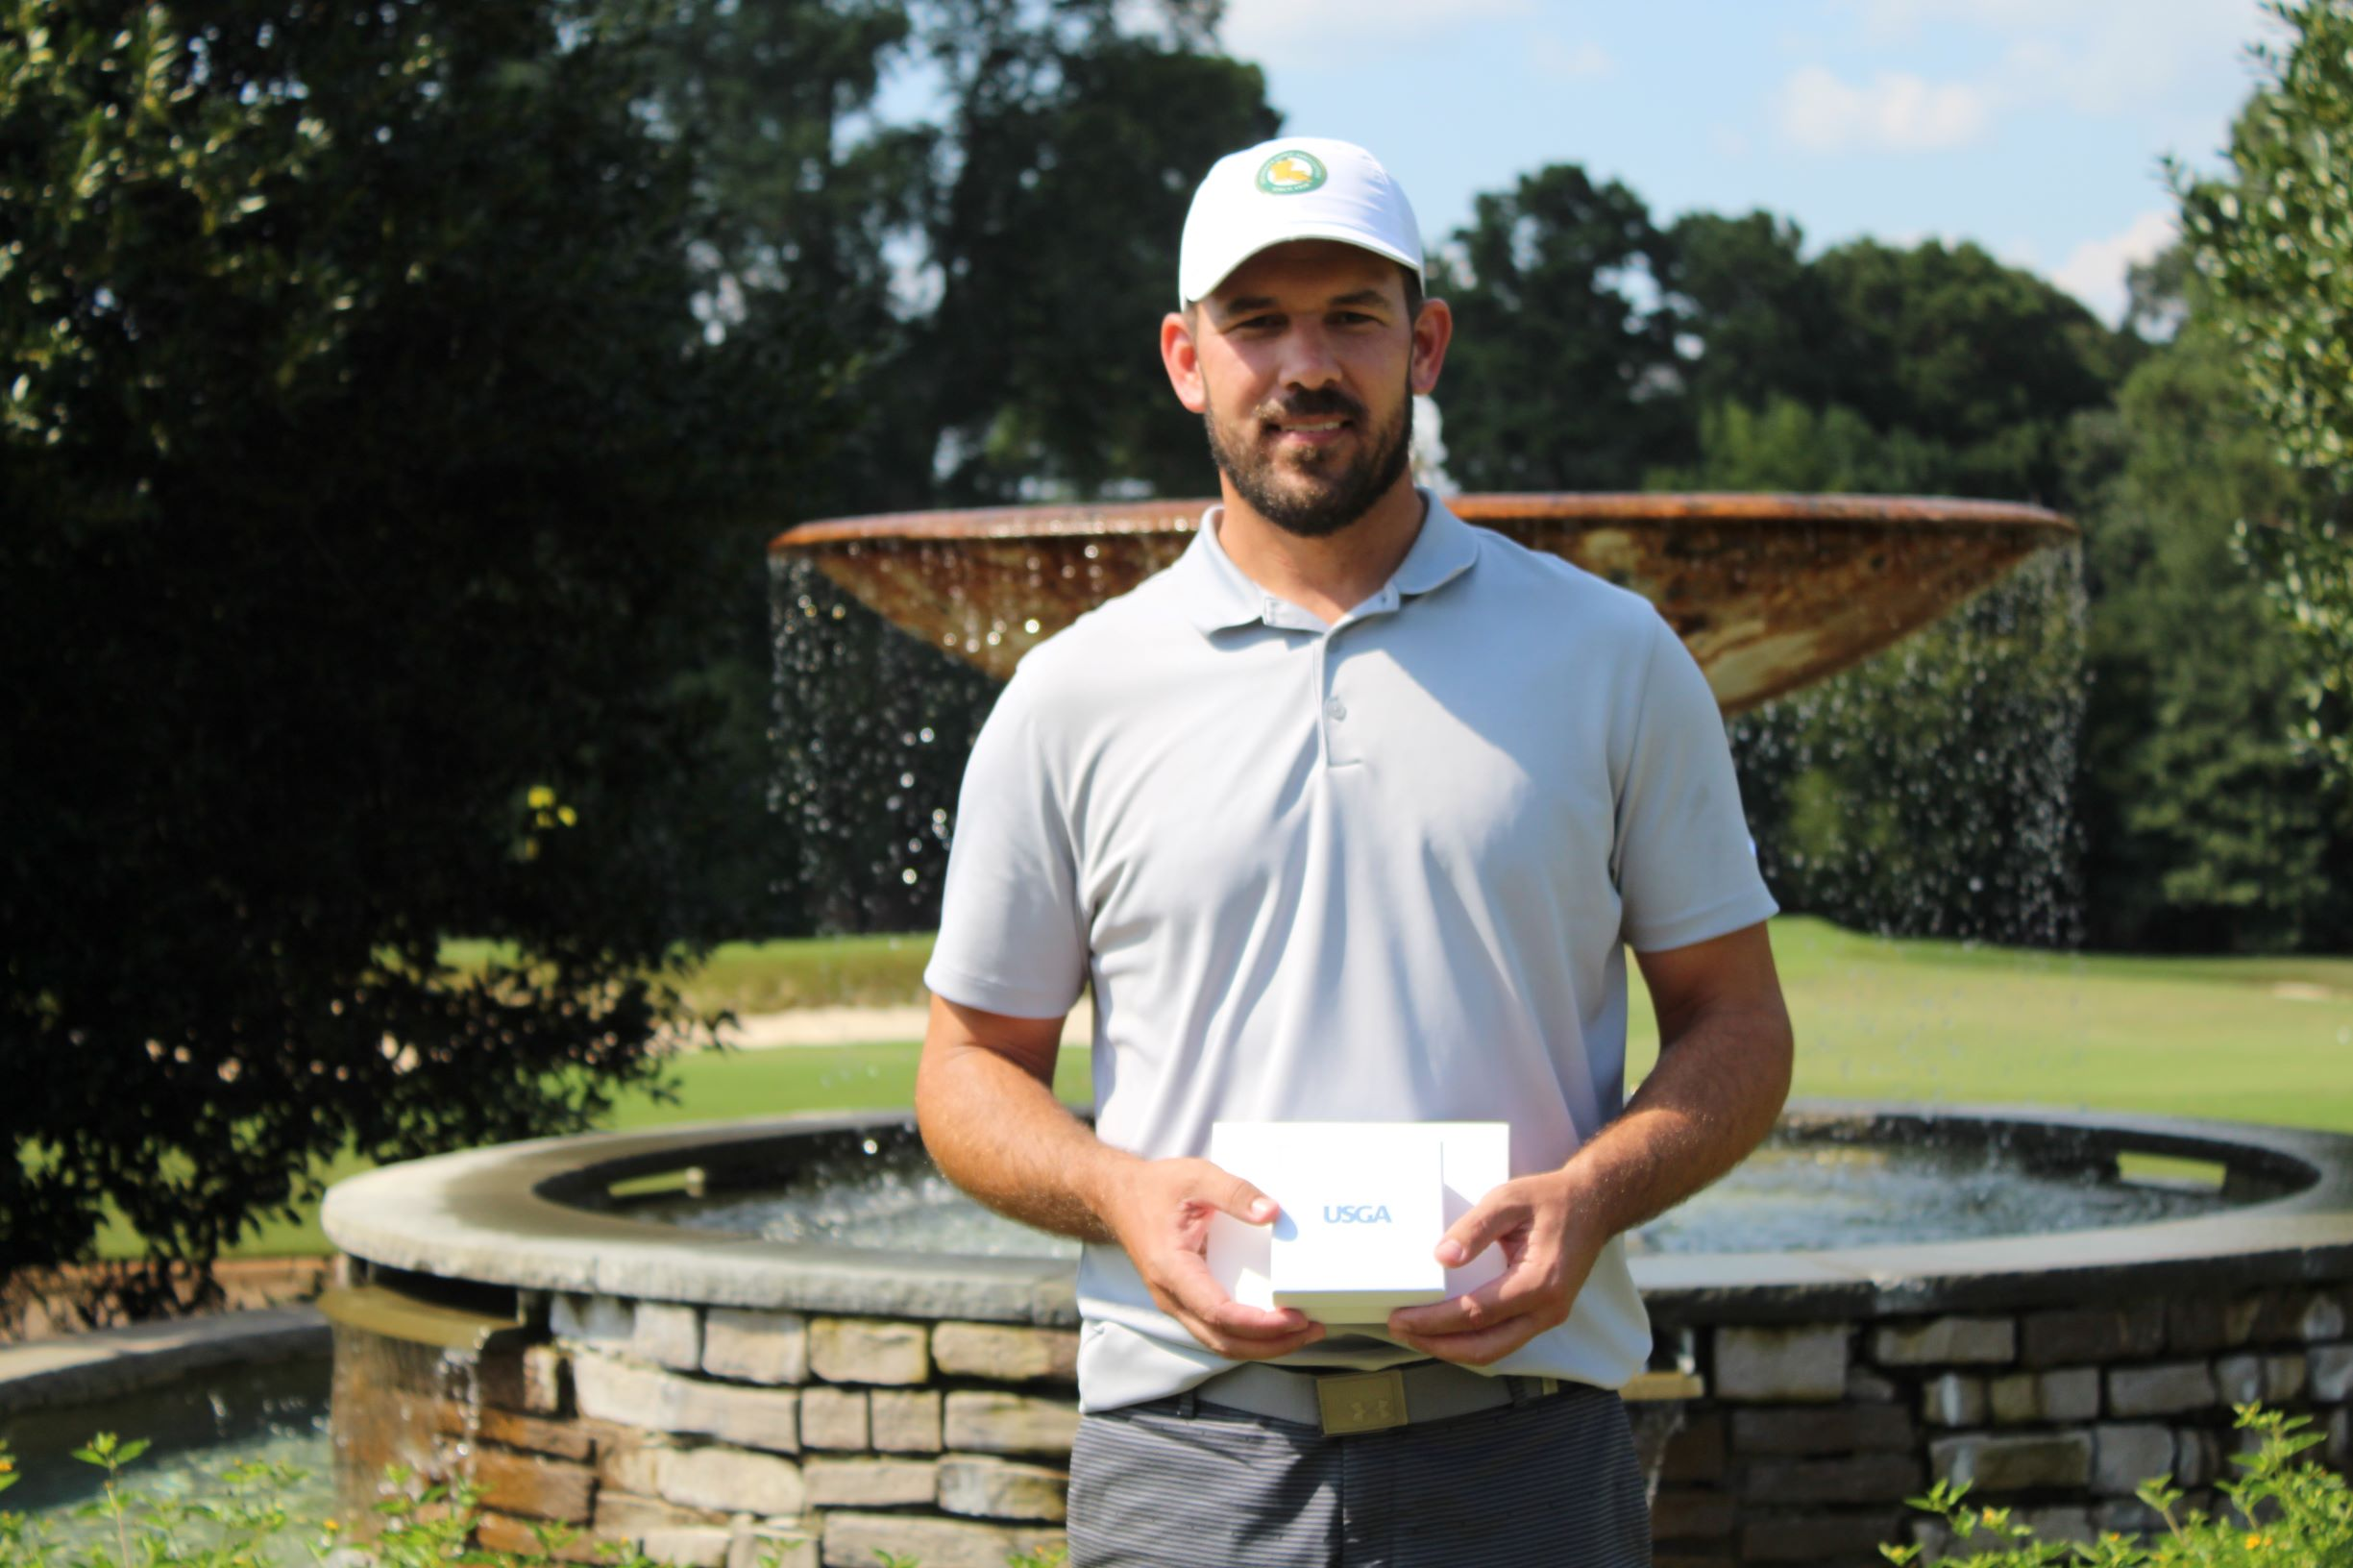 JOHN HUMPHRIES EARNS MEDALIST HONORS AT USGA MID-AMATEUR CHAMPIONSHIP QUALIFIER